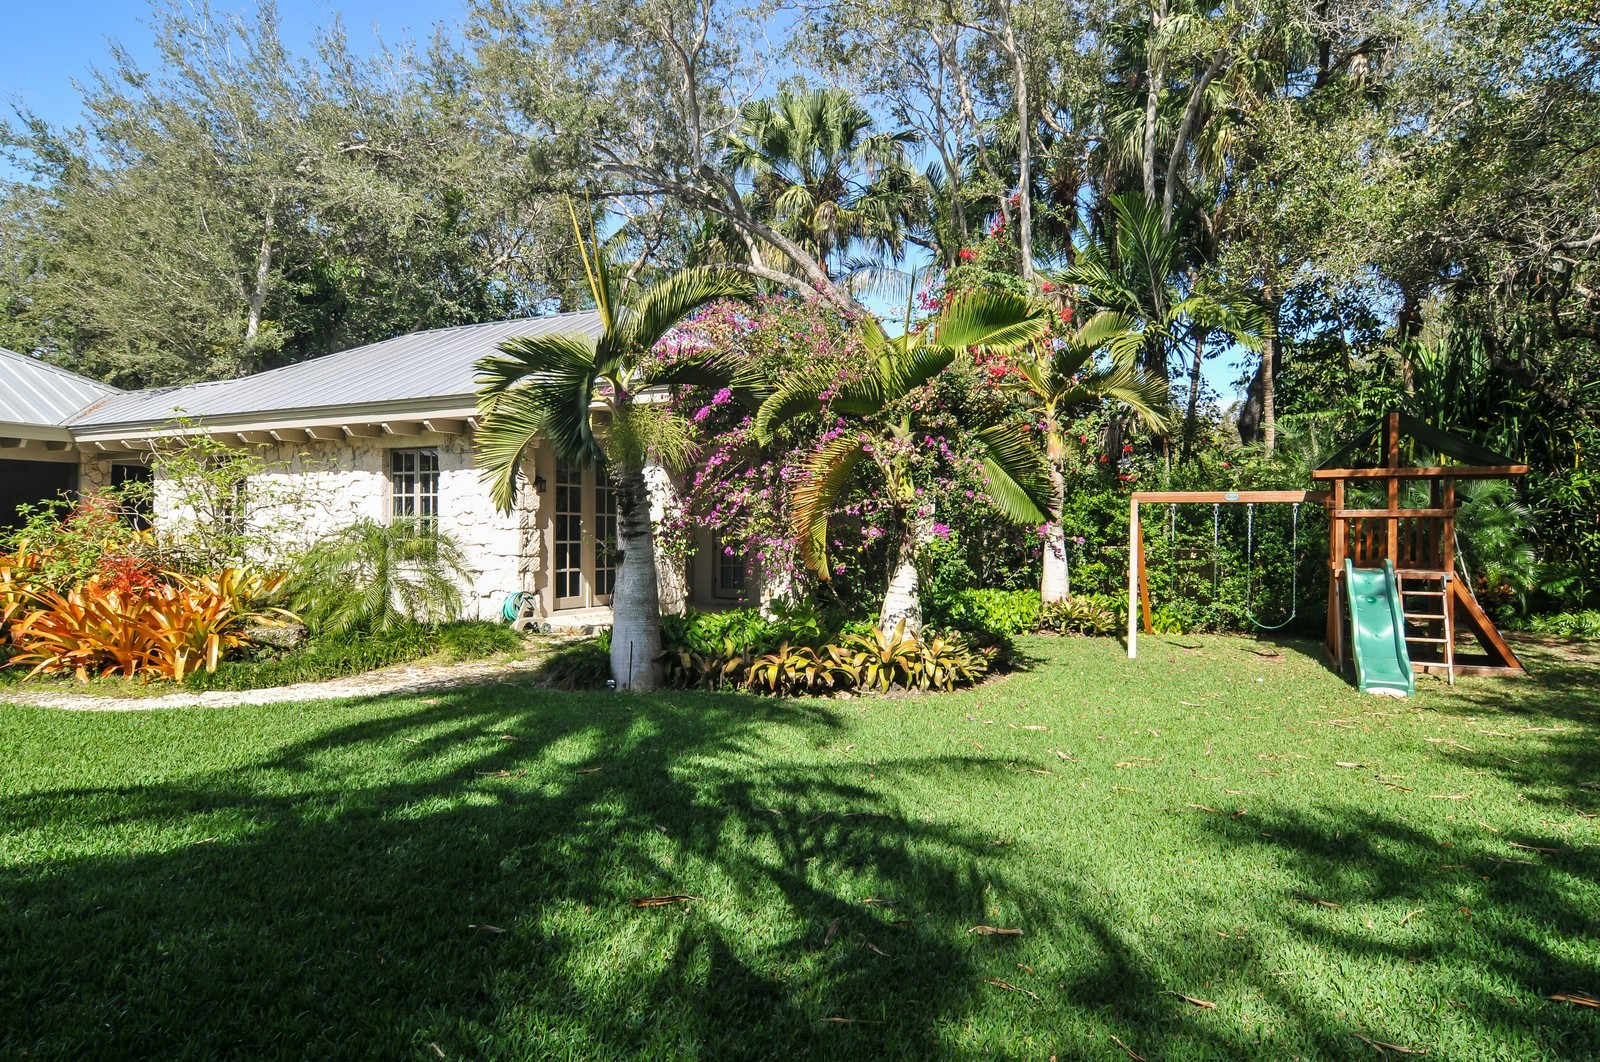 Real Estate Photography - 10225 Coral Creek Rd, Coral Gables, FL, 33156 - Guest House